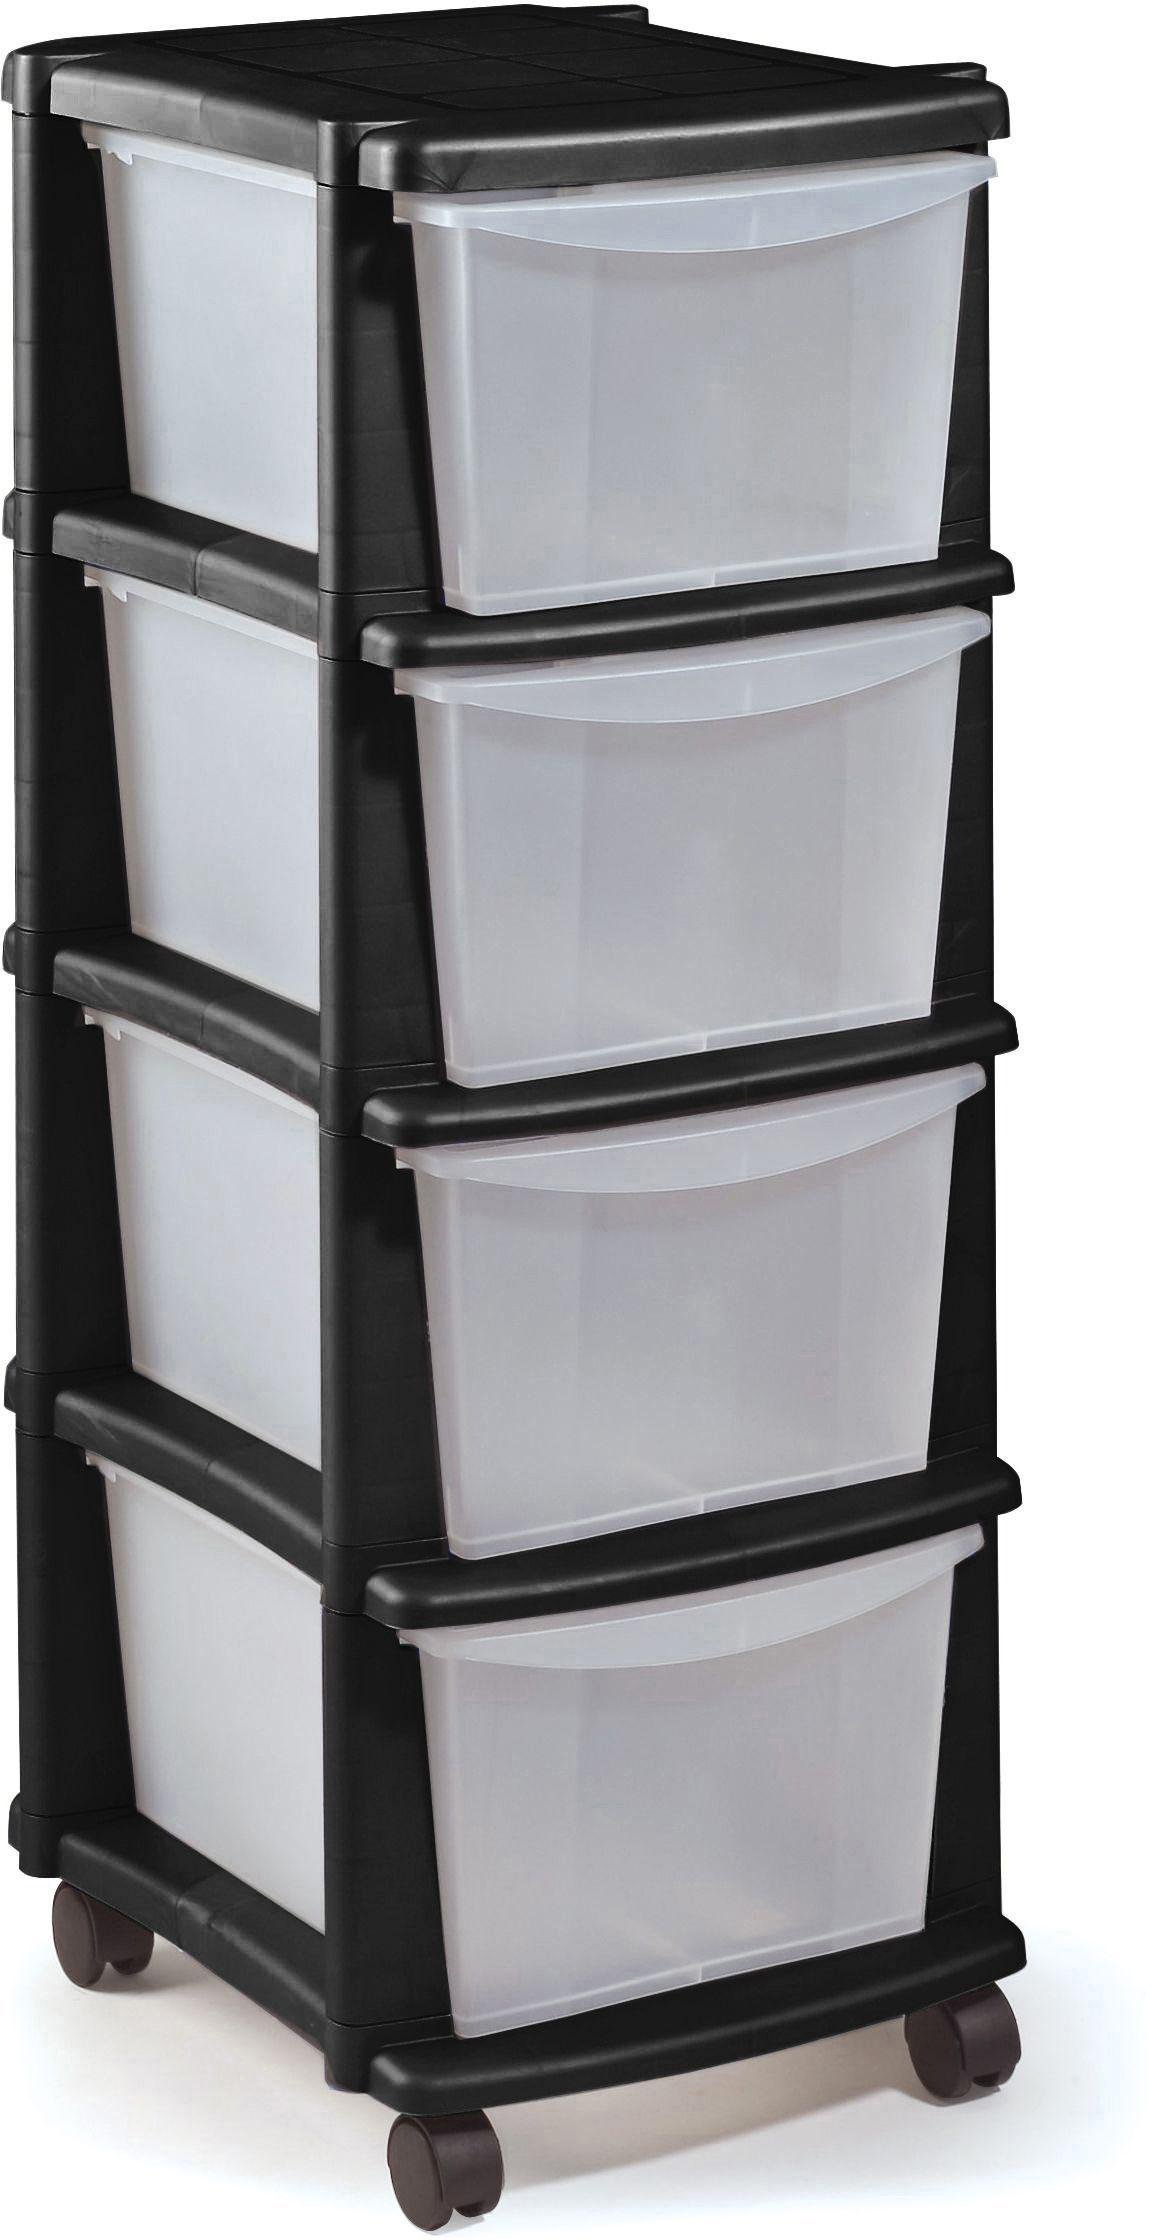 HOME Keter 4 Drawer Plastic Tower Storage Unit Black